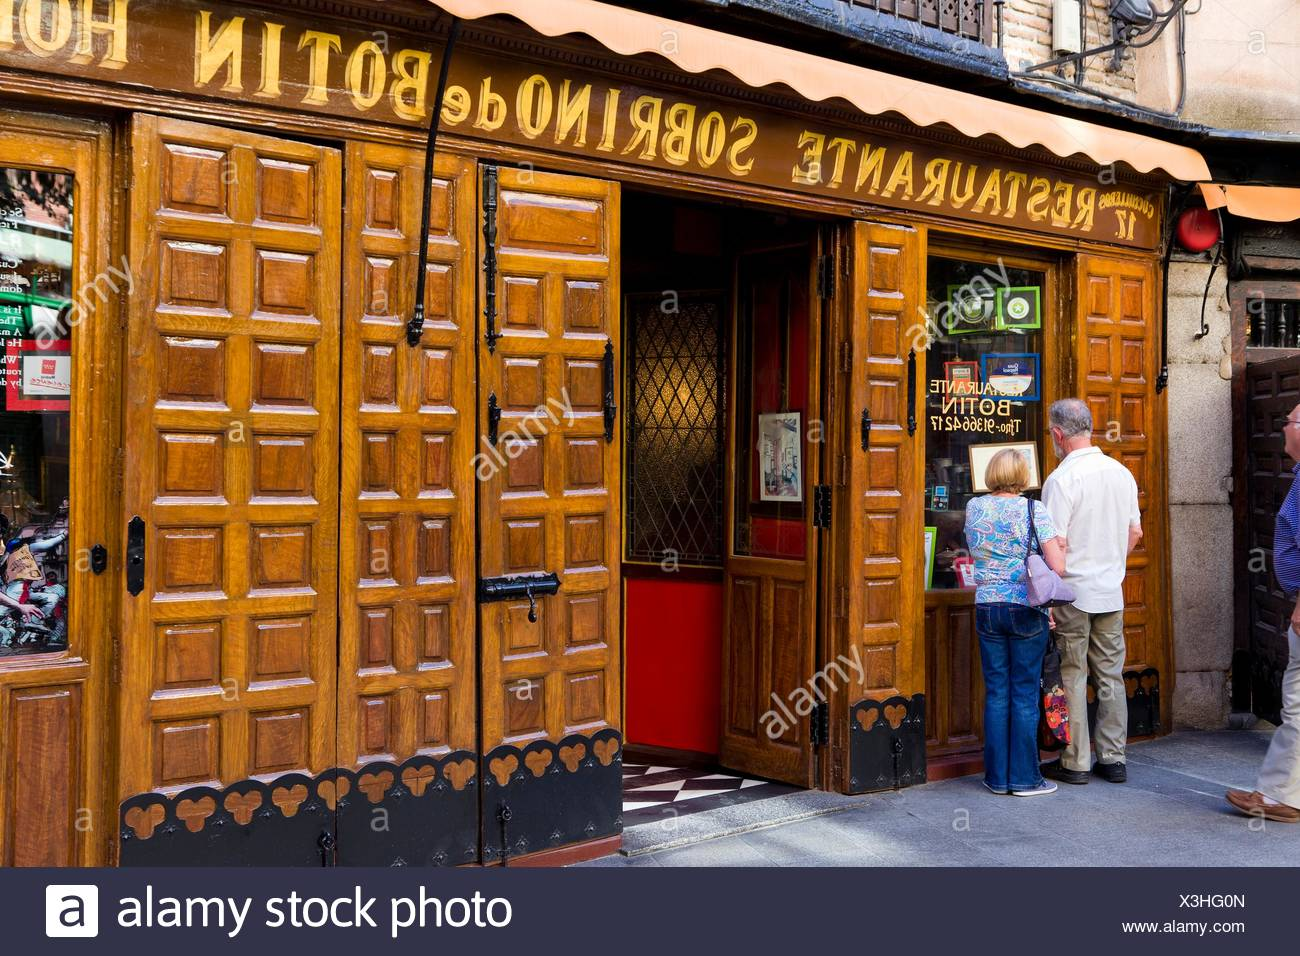 Botin madrid stock photos botin madrid stock images alamy for Casa botin madrid